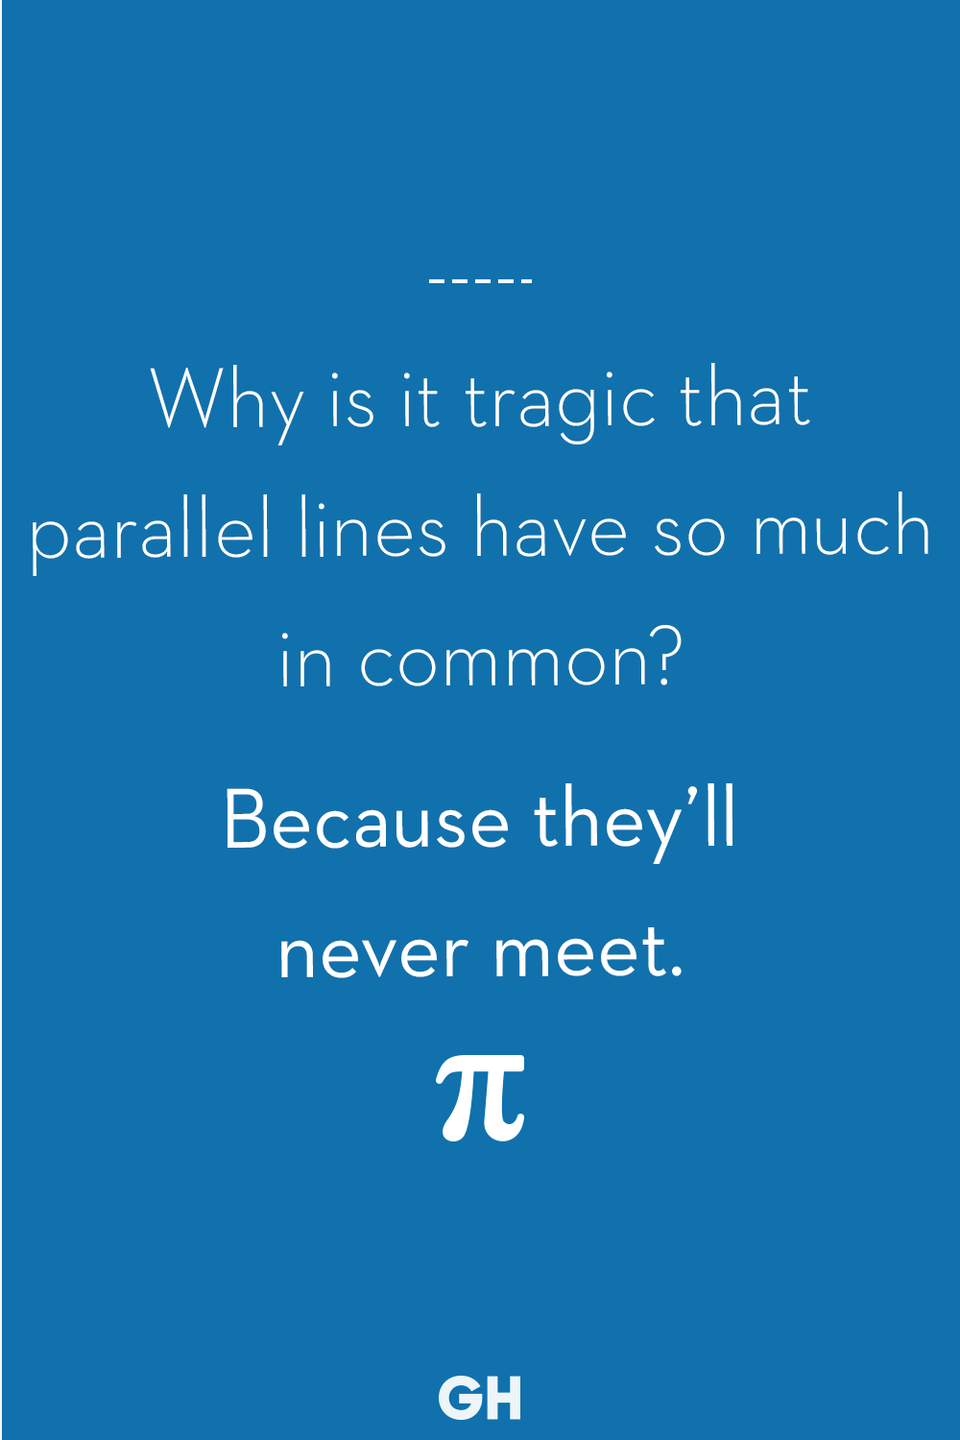 <p>Because they'll never meet.</p>